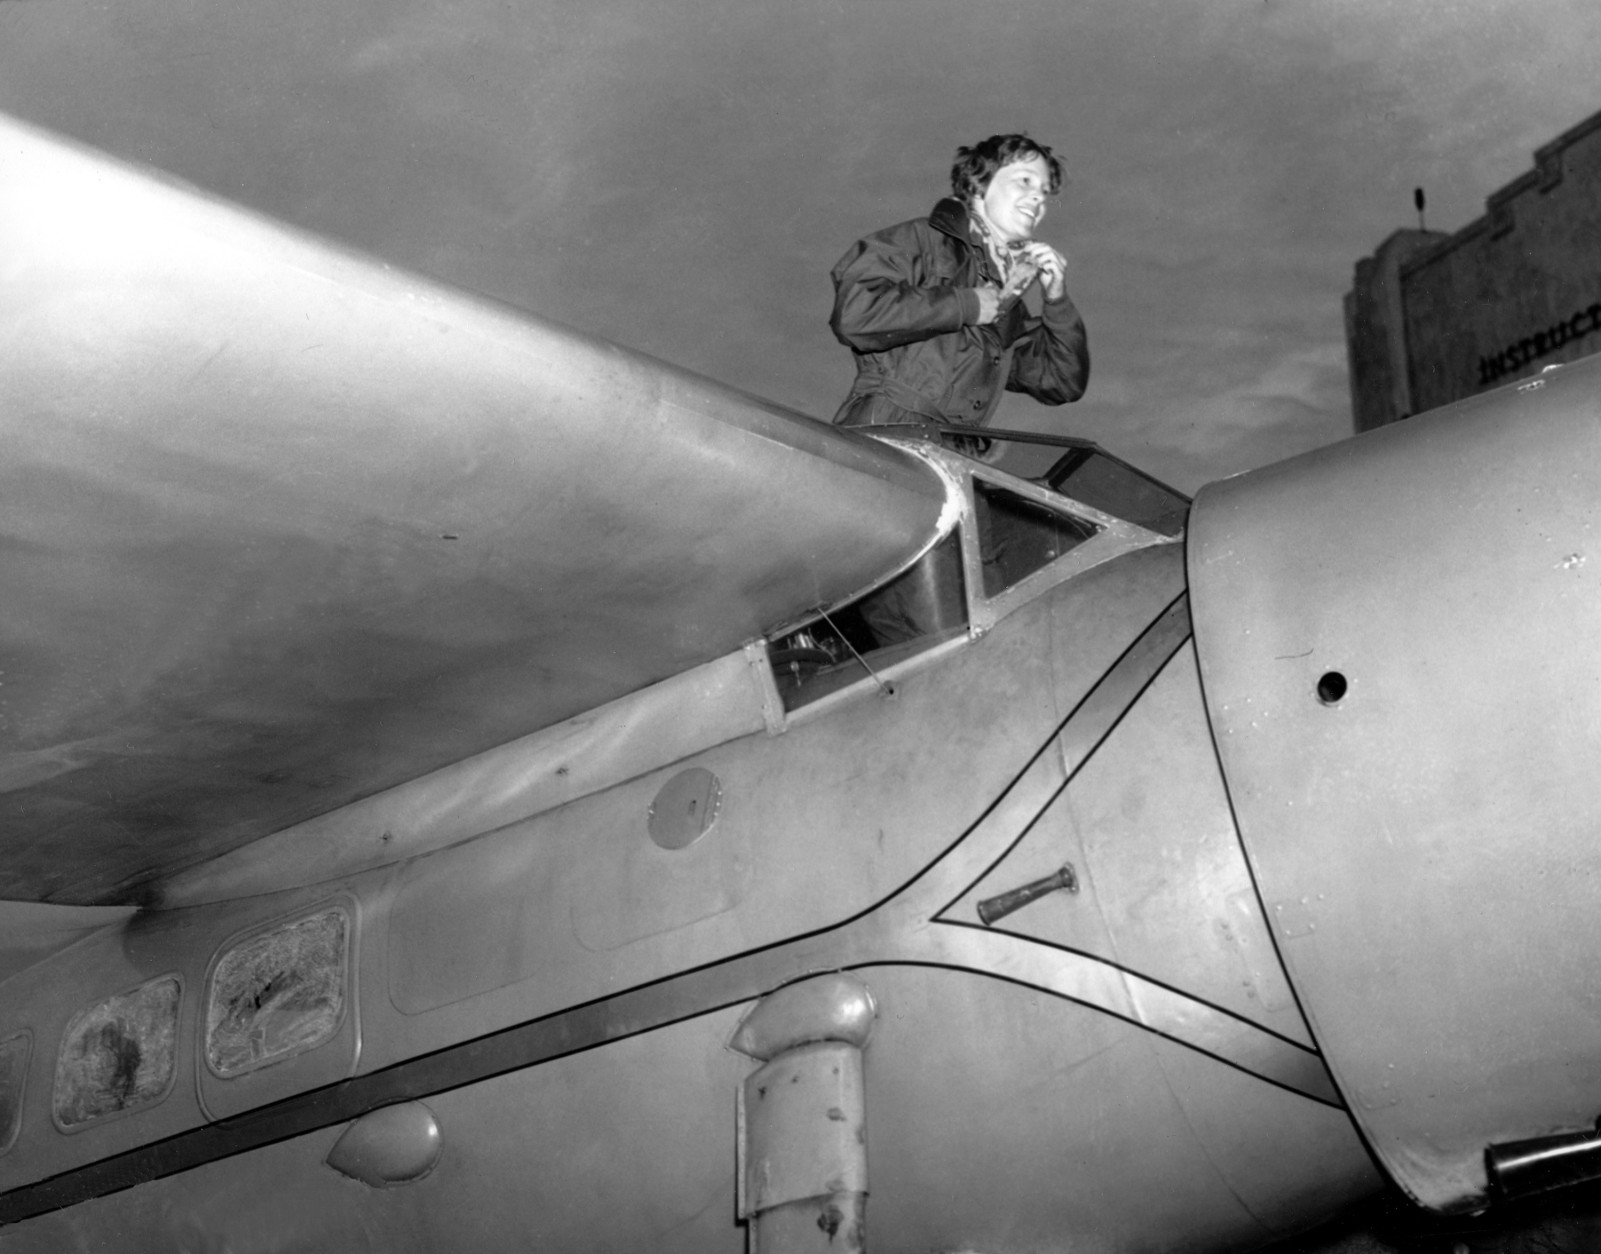 In 1928, Aviator Amelia Earhart became the first woman to fly across the Atlantic Ocean as she completed a flight from Newfoundland to Wales in about 21 hours.  (AP Photo)